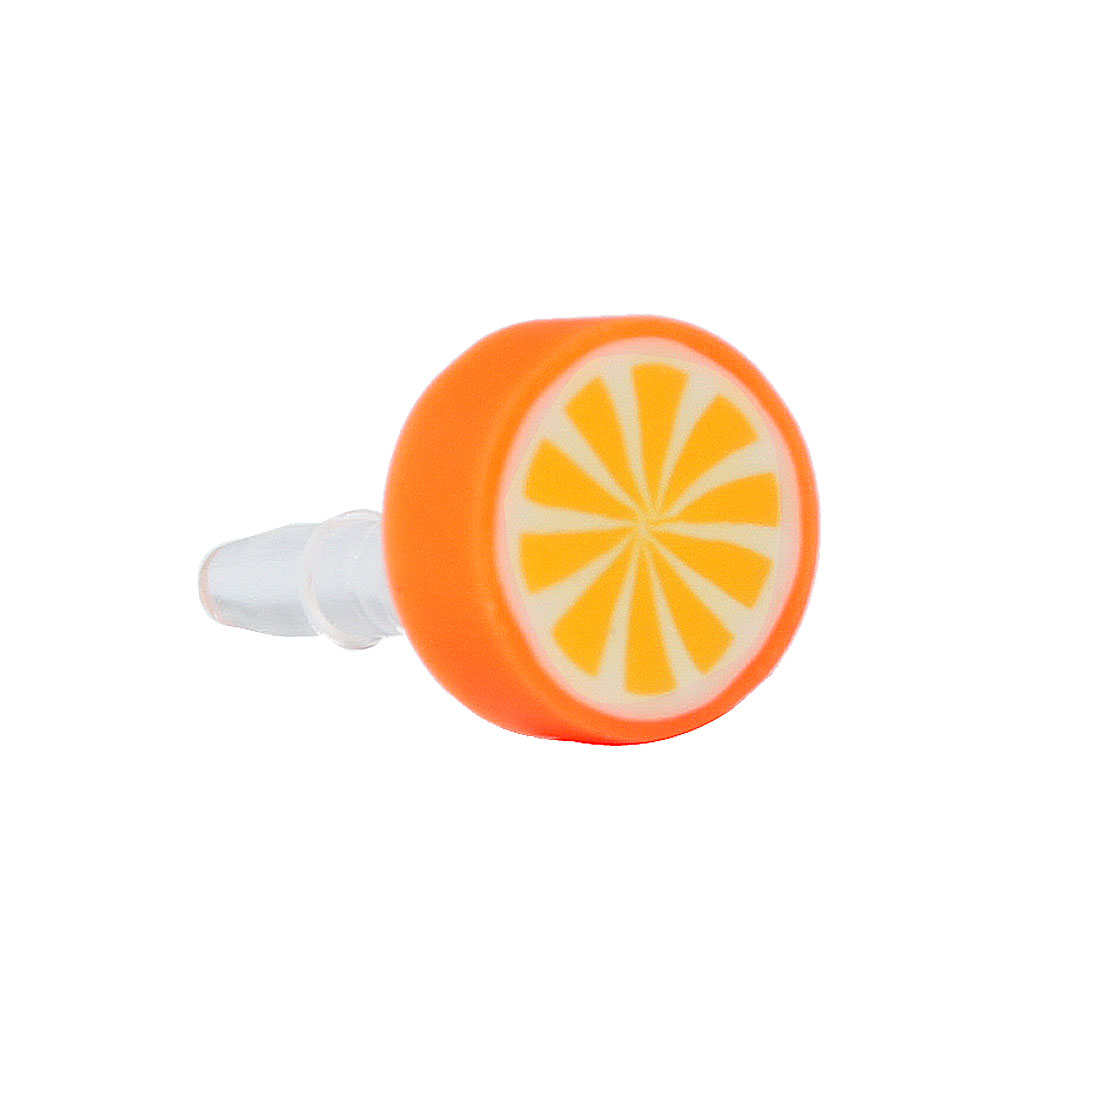 Round Orange Design 3.5mm Earphone Ear Cap Anti Dust for Cell Phone Smartphone